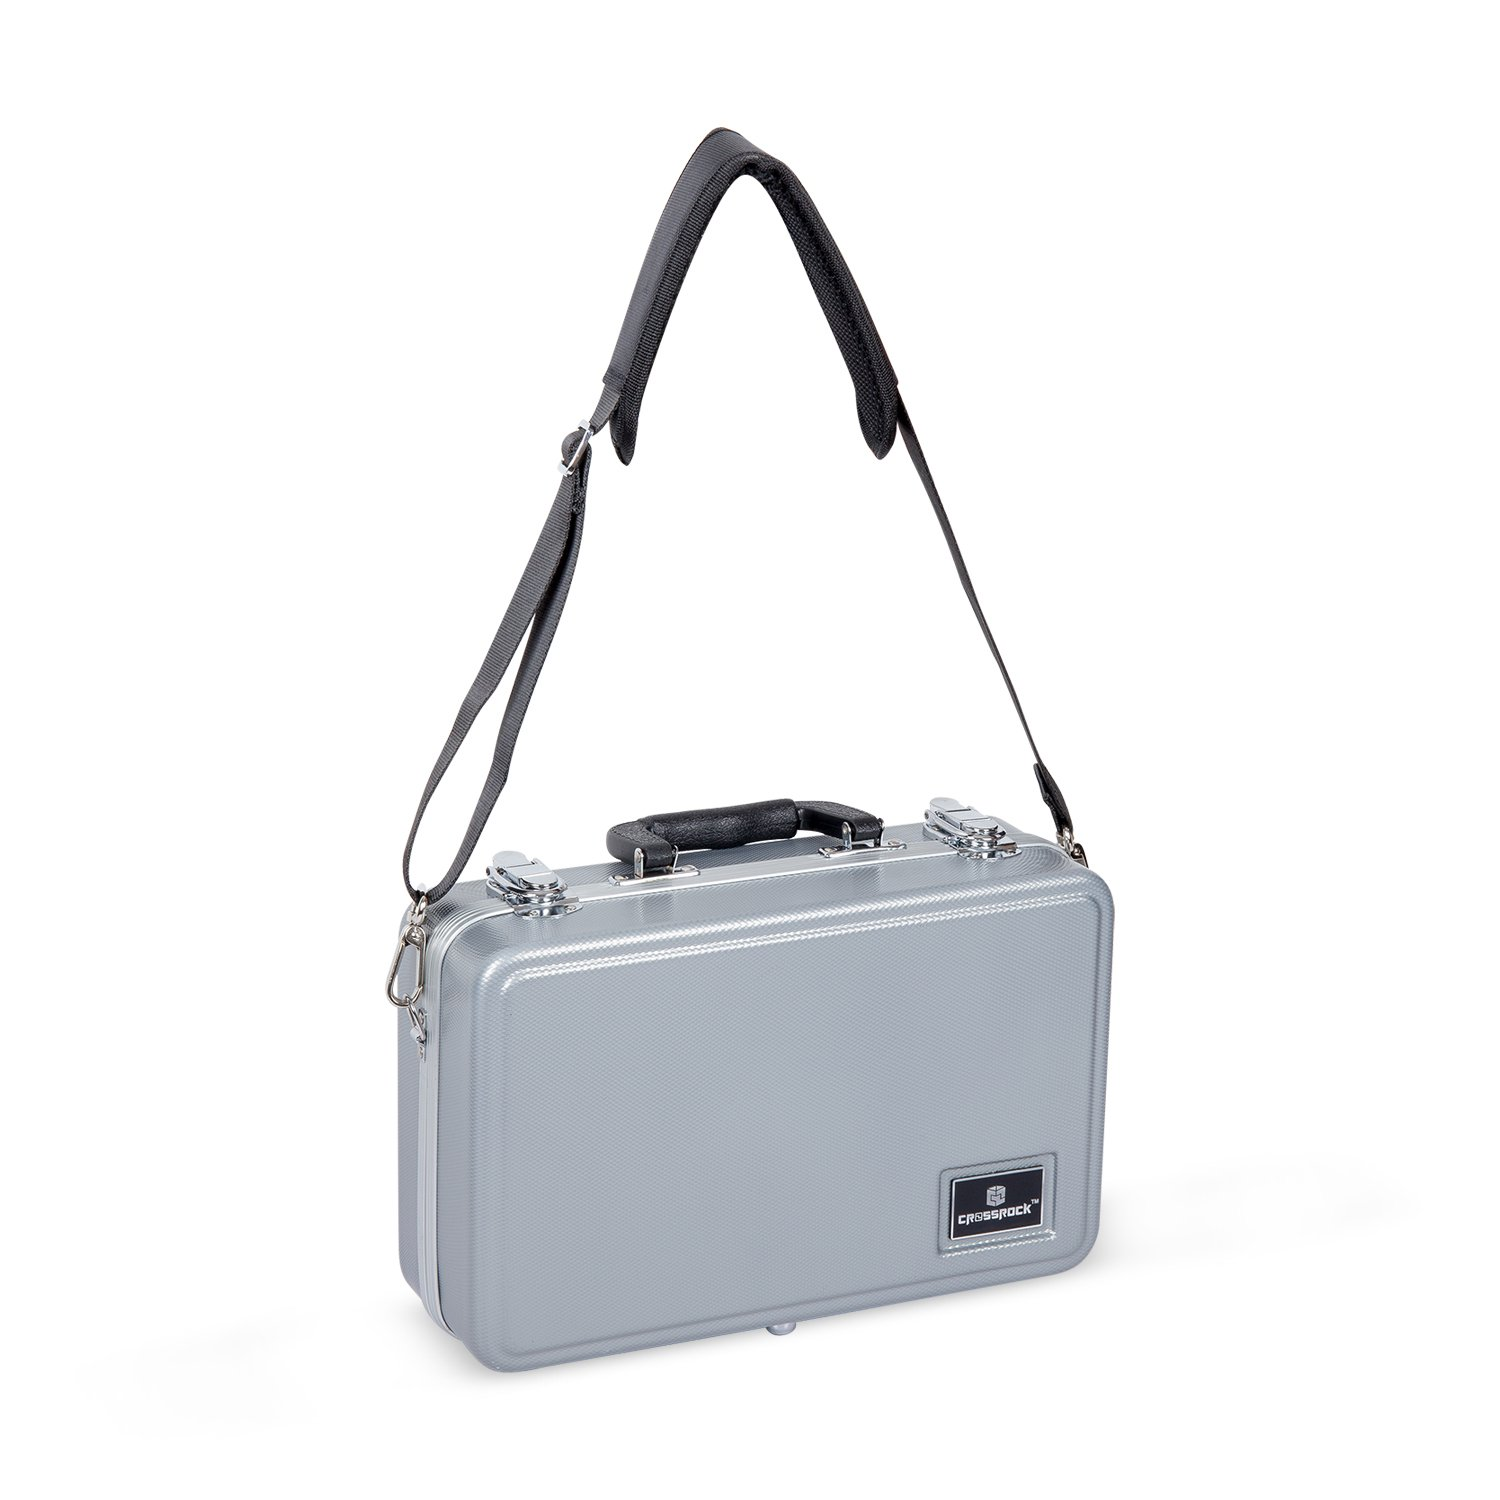 Crossrock CRA860CLSL Clarinet ABS Molded Hard Shell Case with Single Shoulder Strap in Silver